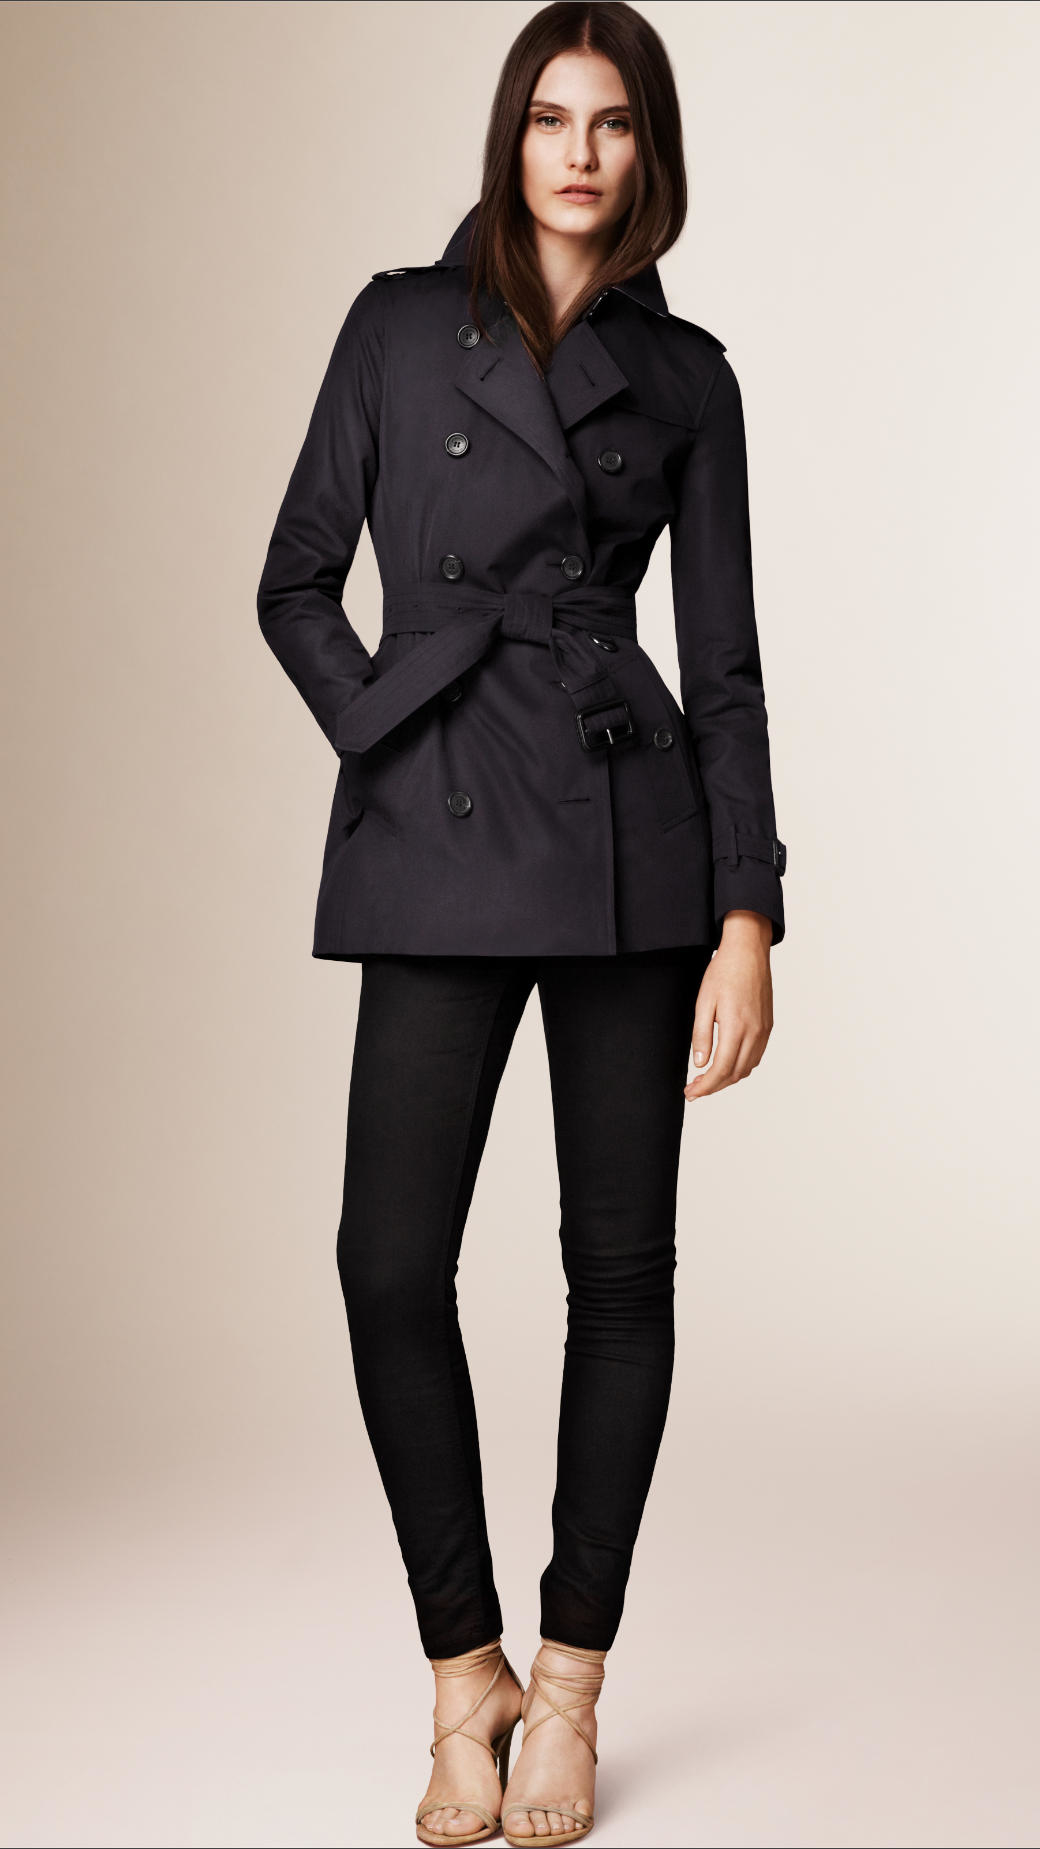 Burberry The Kensington - Short Heritage Trench Coat in Black | Lyst